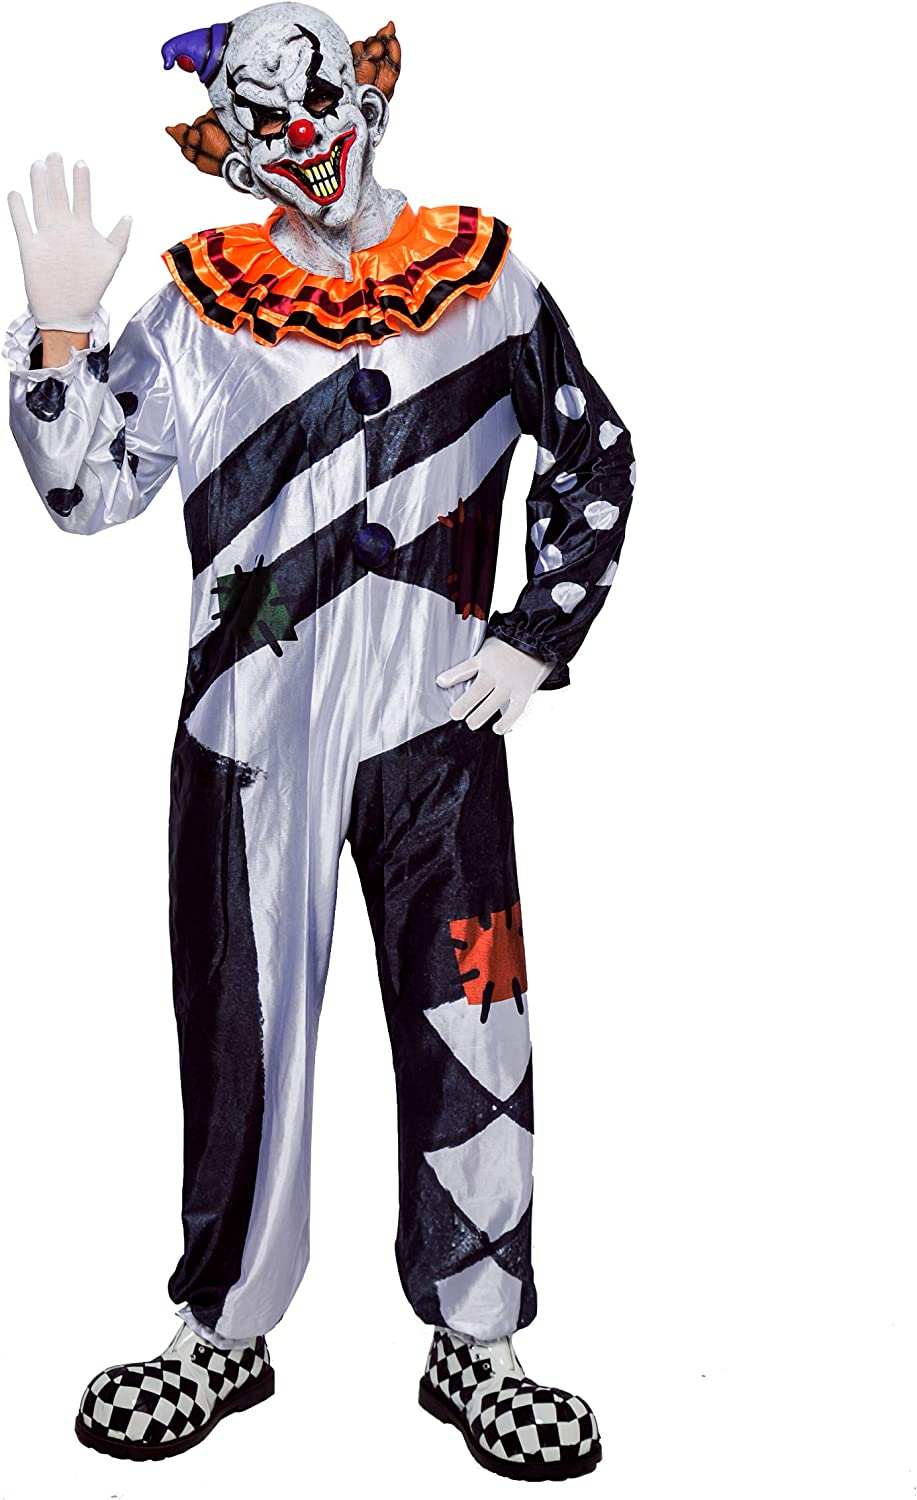 Role Play and Carnival Cosplay Scary Clown Deluxe Men Costume Set for Halloween Dress Up Party